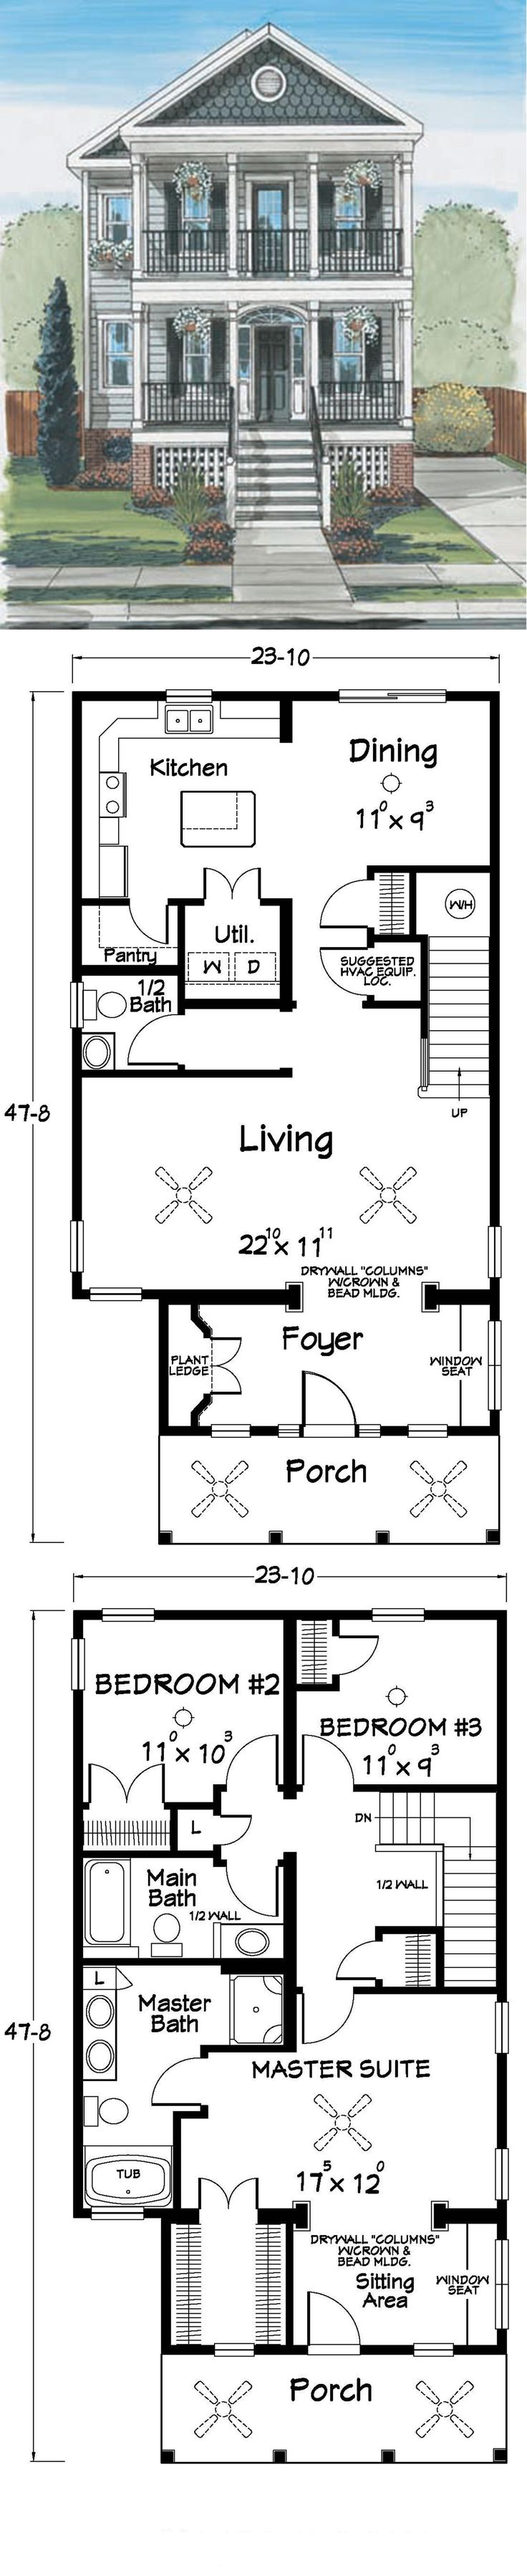 best 25 small floor plans ideas on pinterest small cottage this master suite will knock you off your feet tell us what you think at